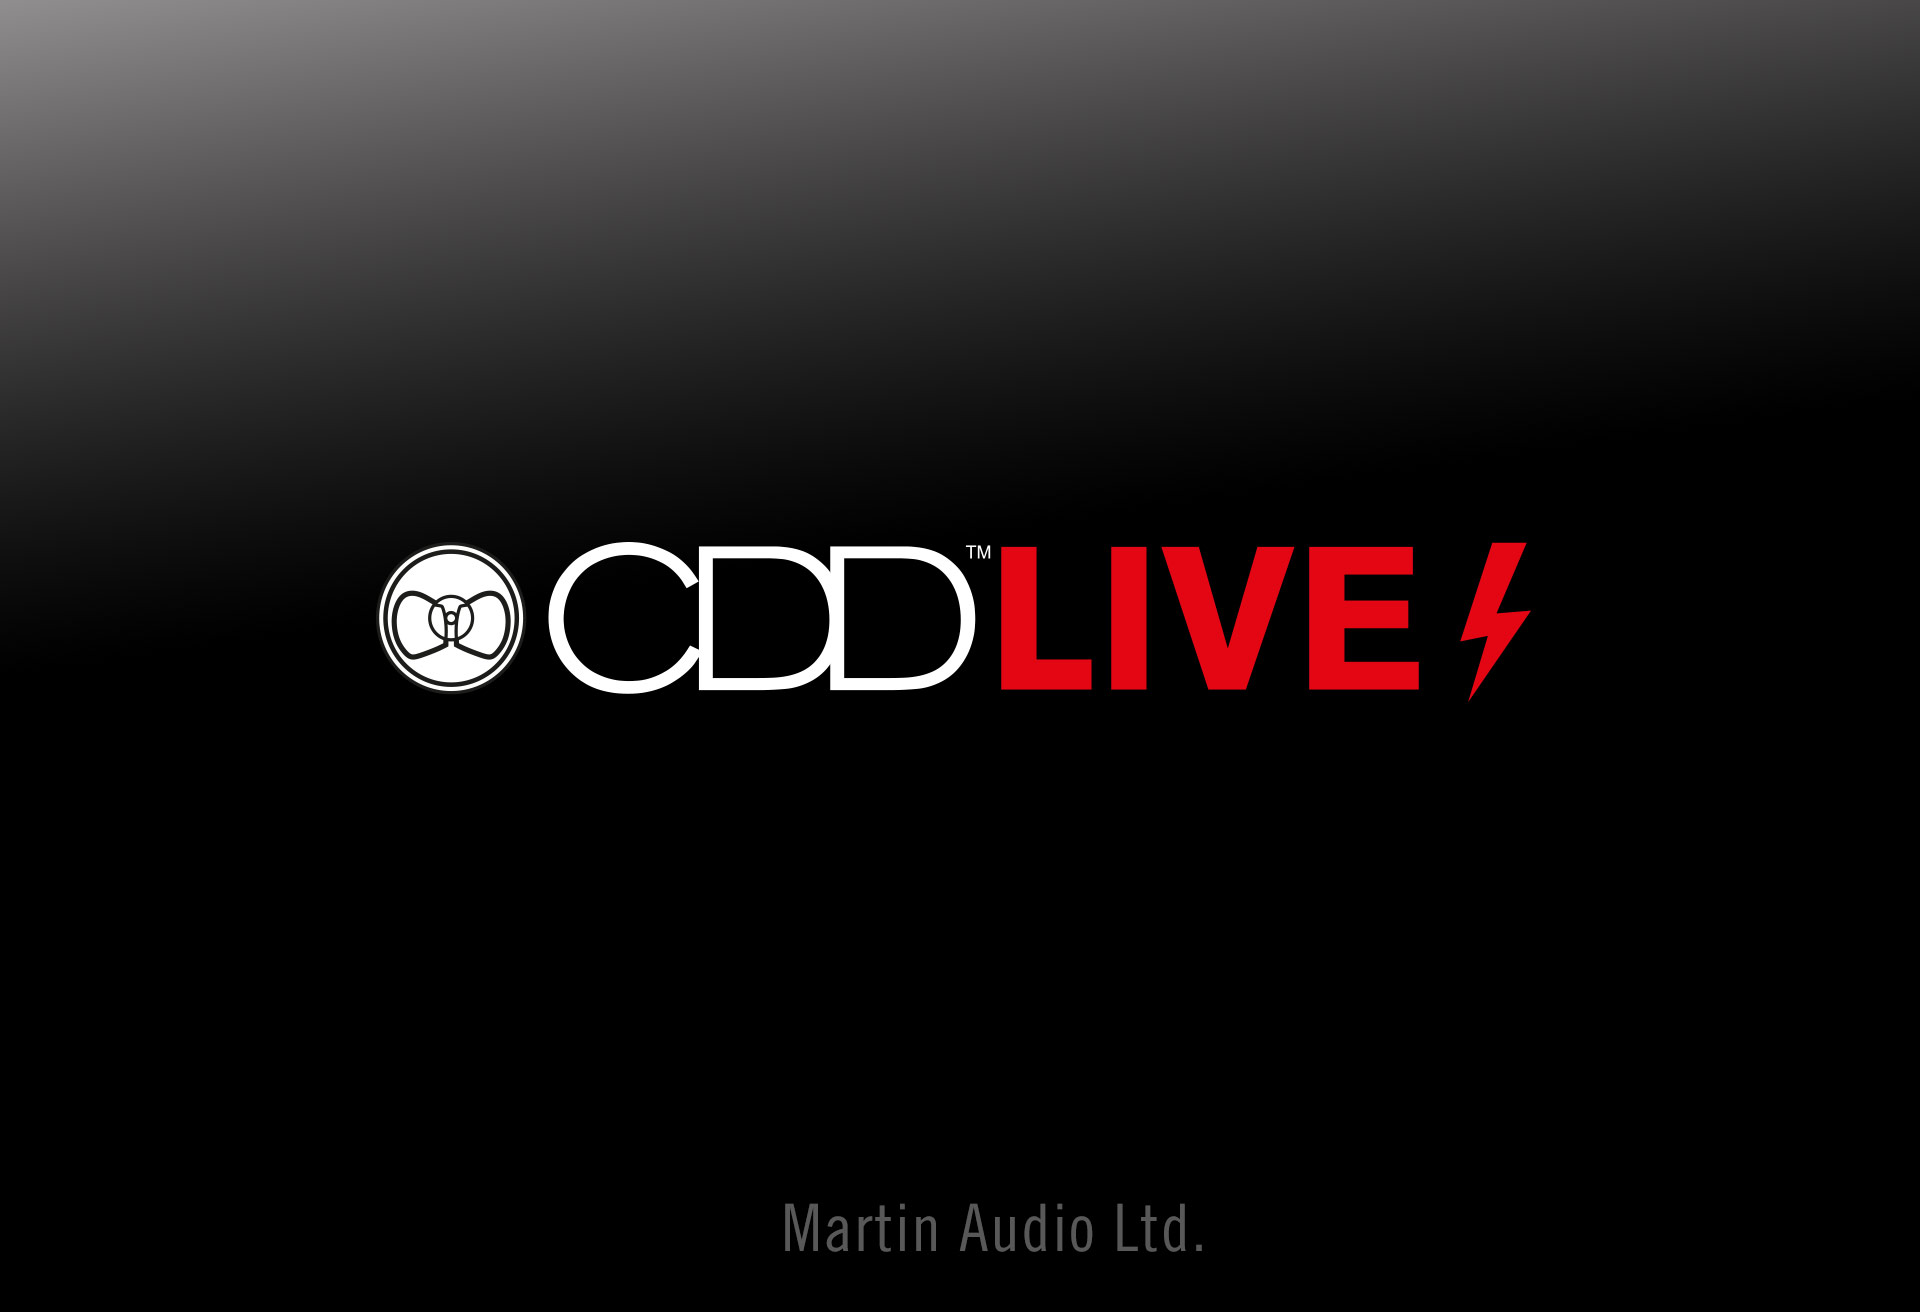 Martin Audio - CDDLIVE! Logo Design